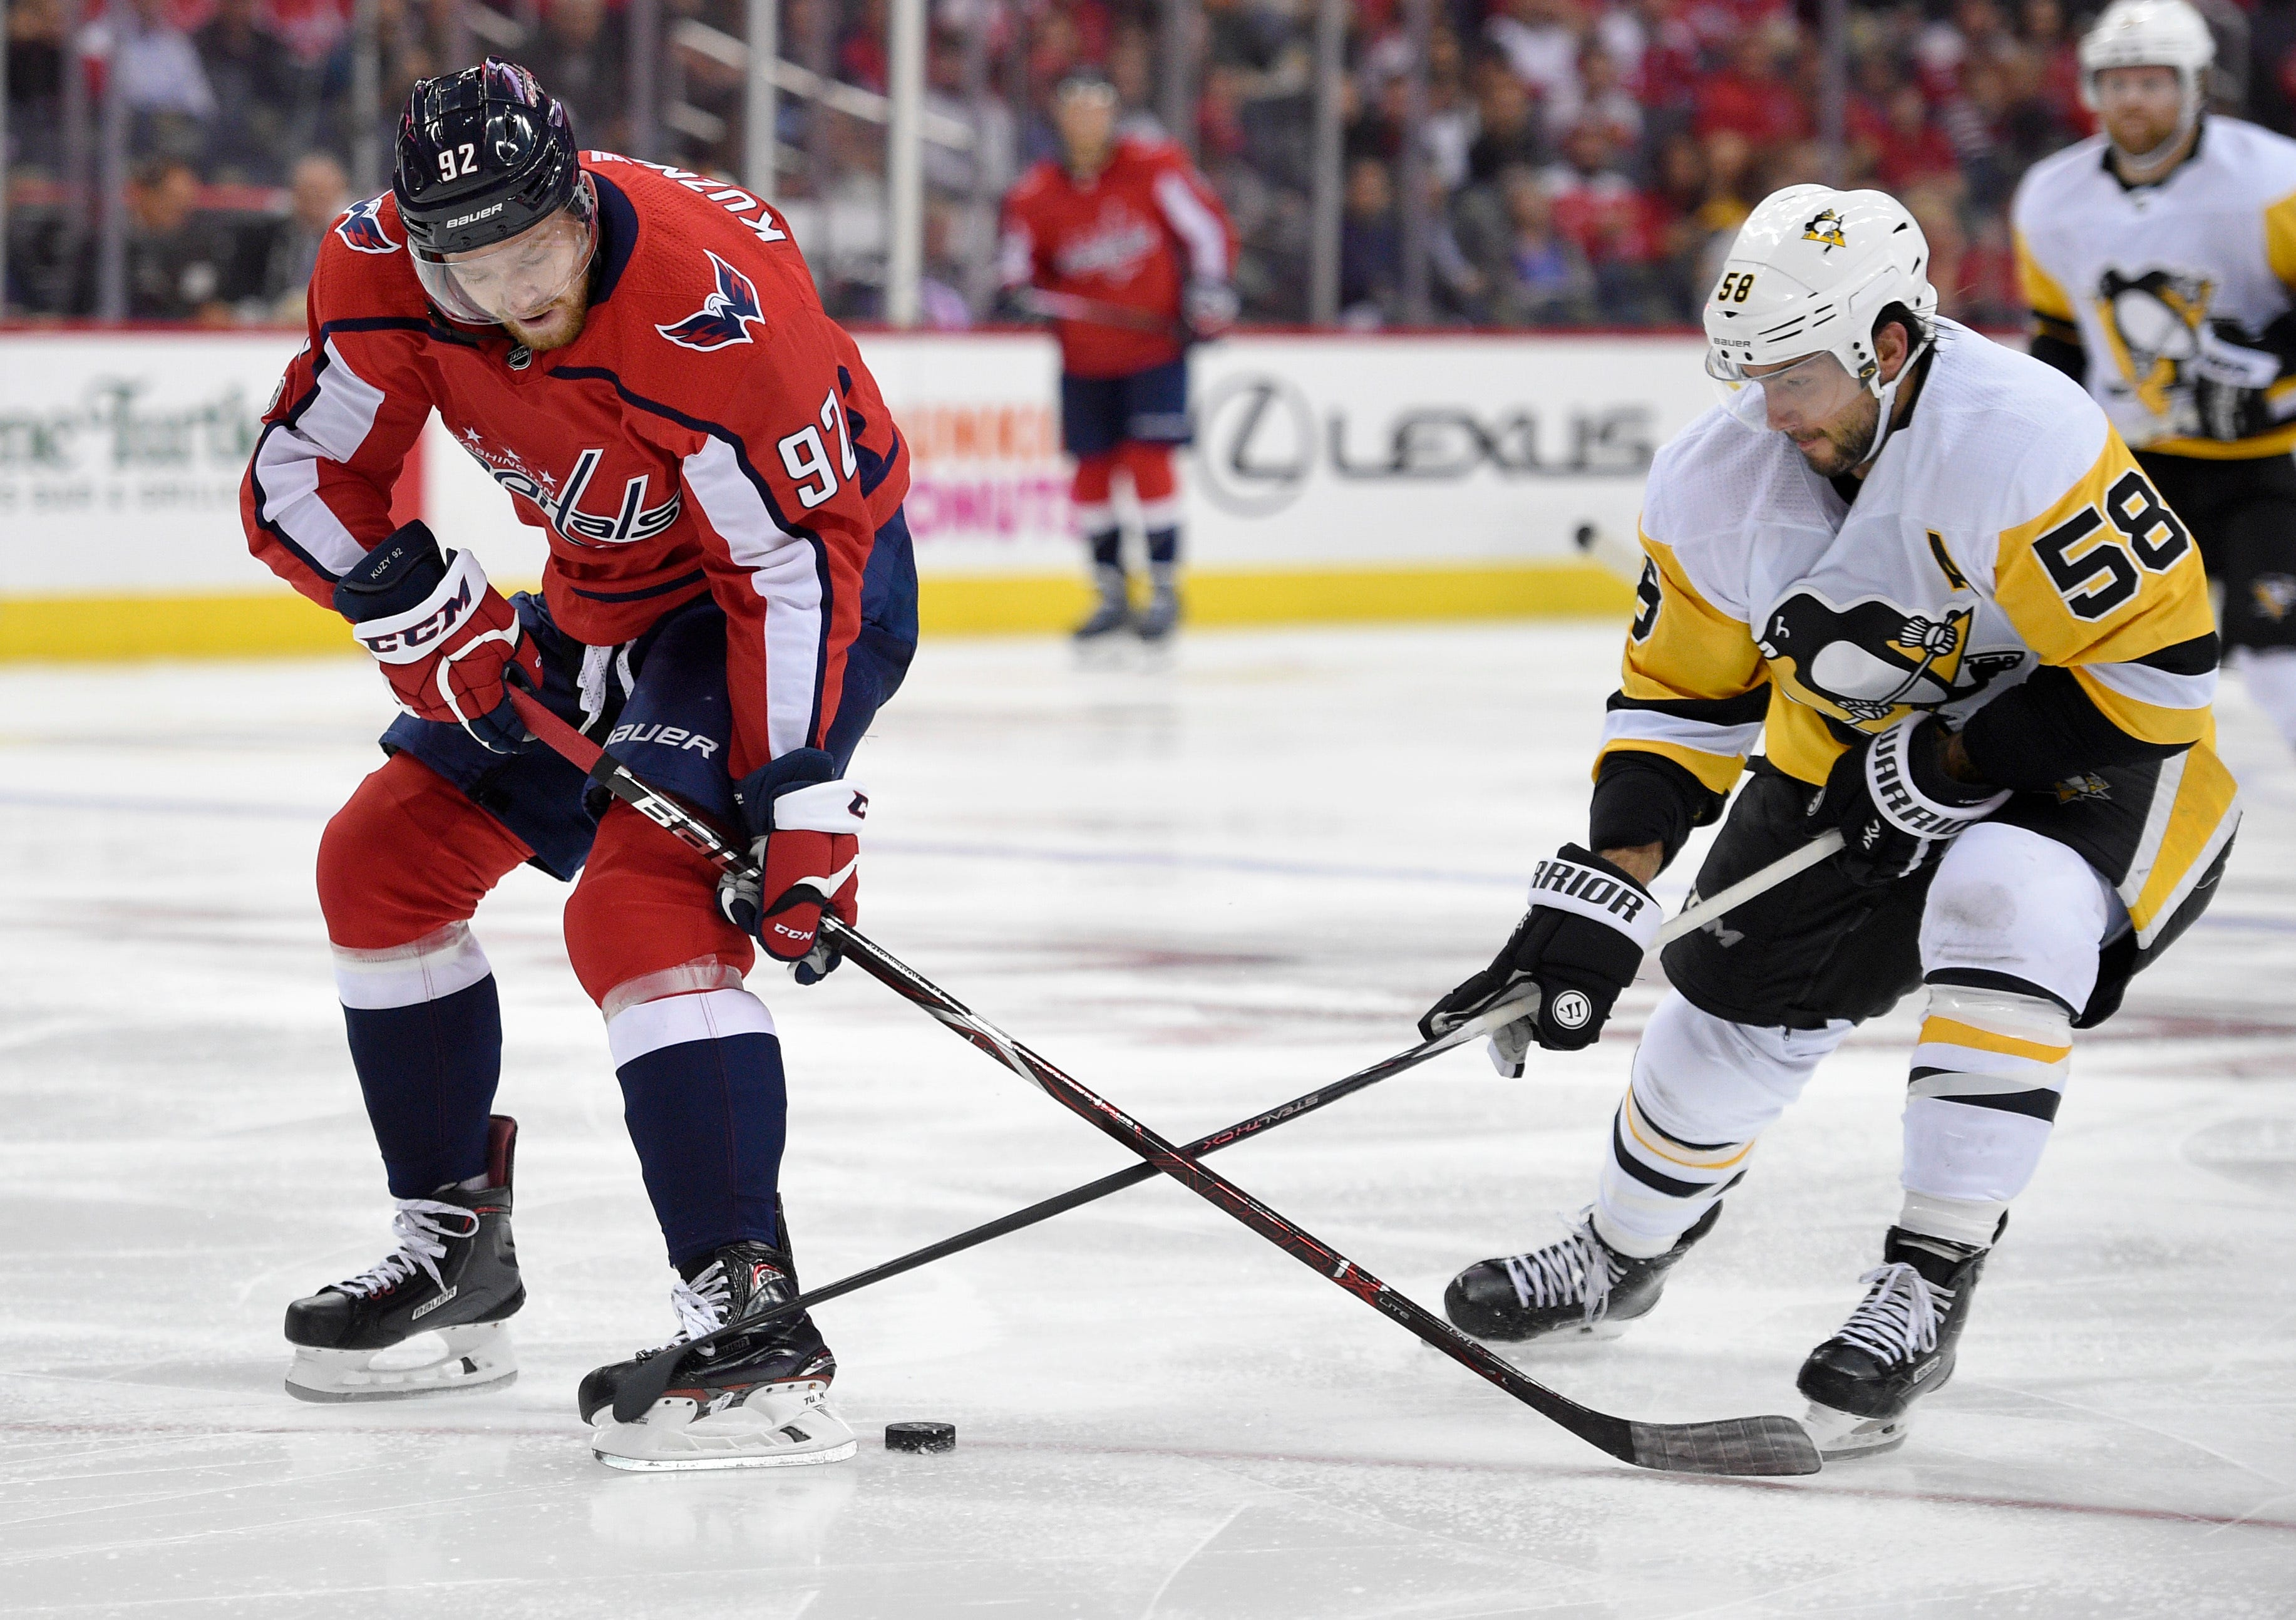 Hornqvist has 2 points in season debut, Pens beat Caps 3-2